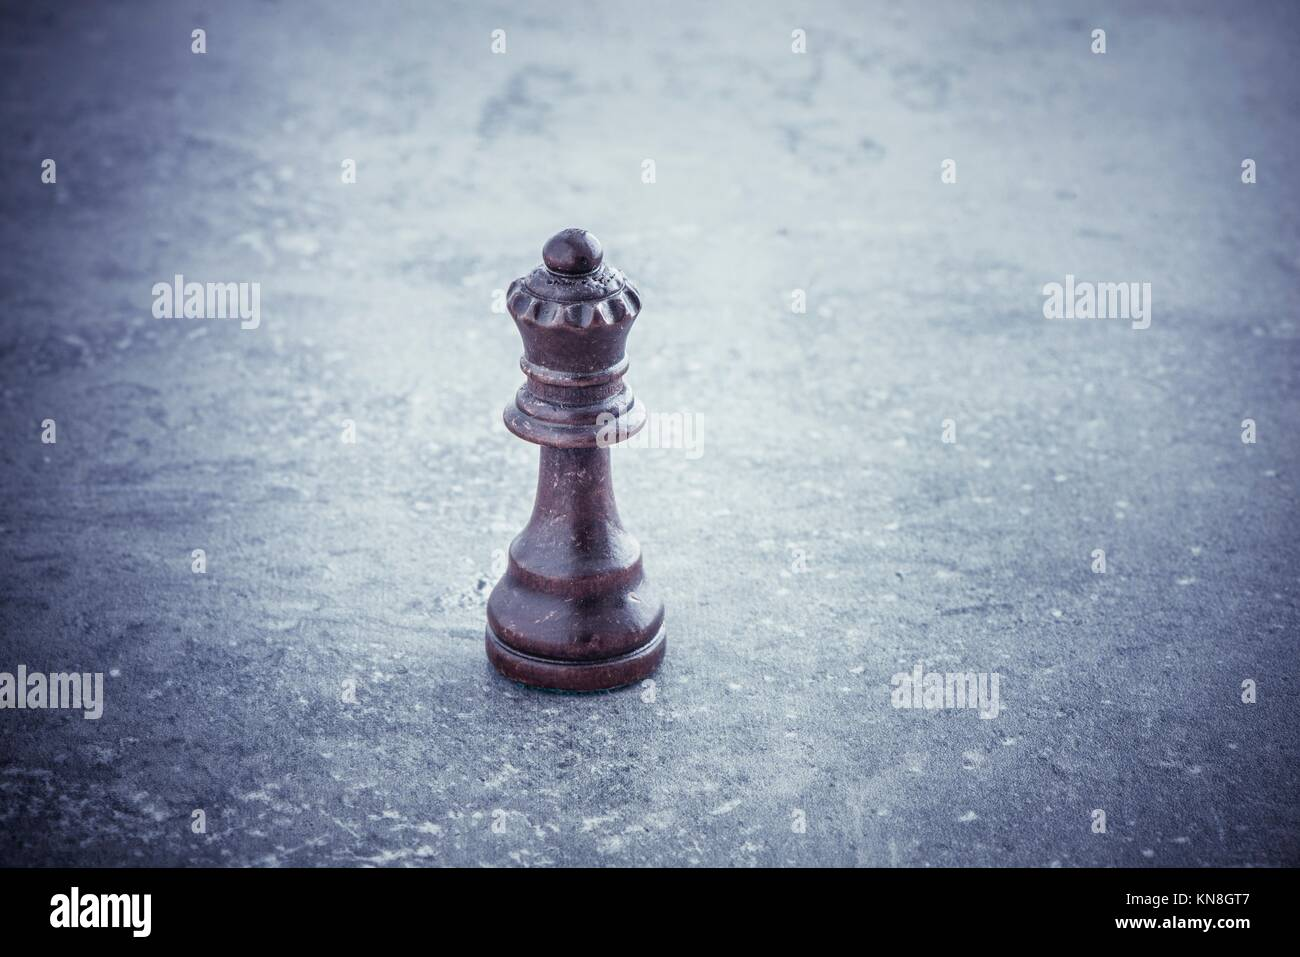 One black chess queen standing alone on stone table with copy space. Concept of strategy, competition and leadership. - Stock Image